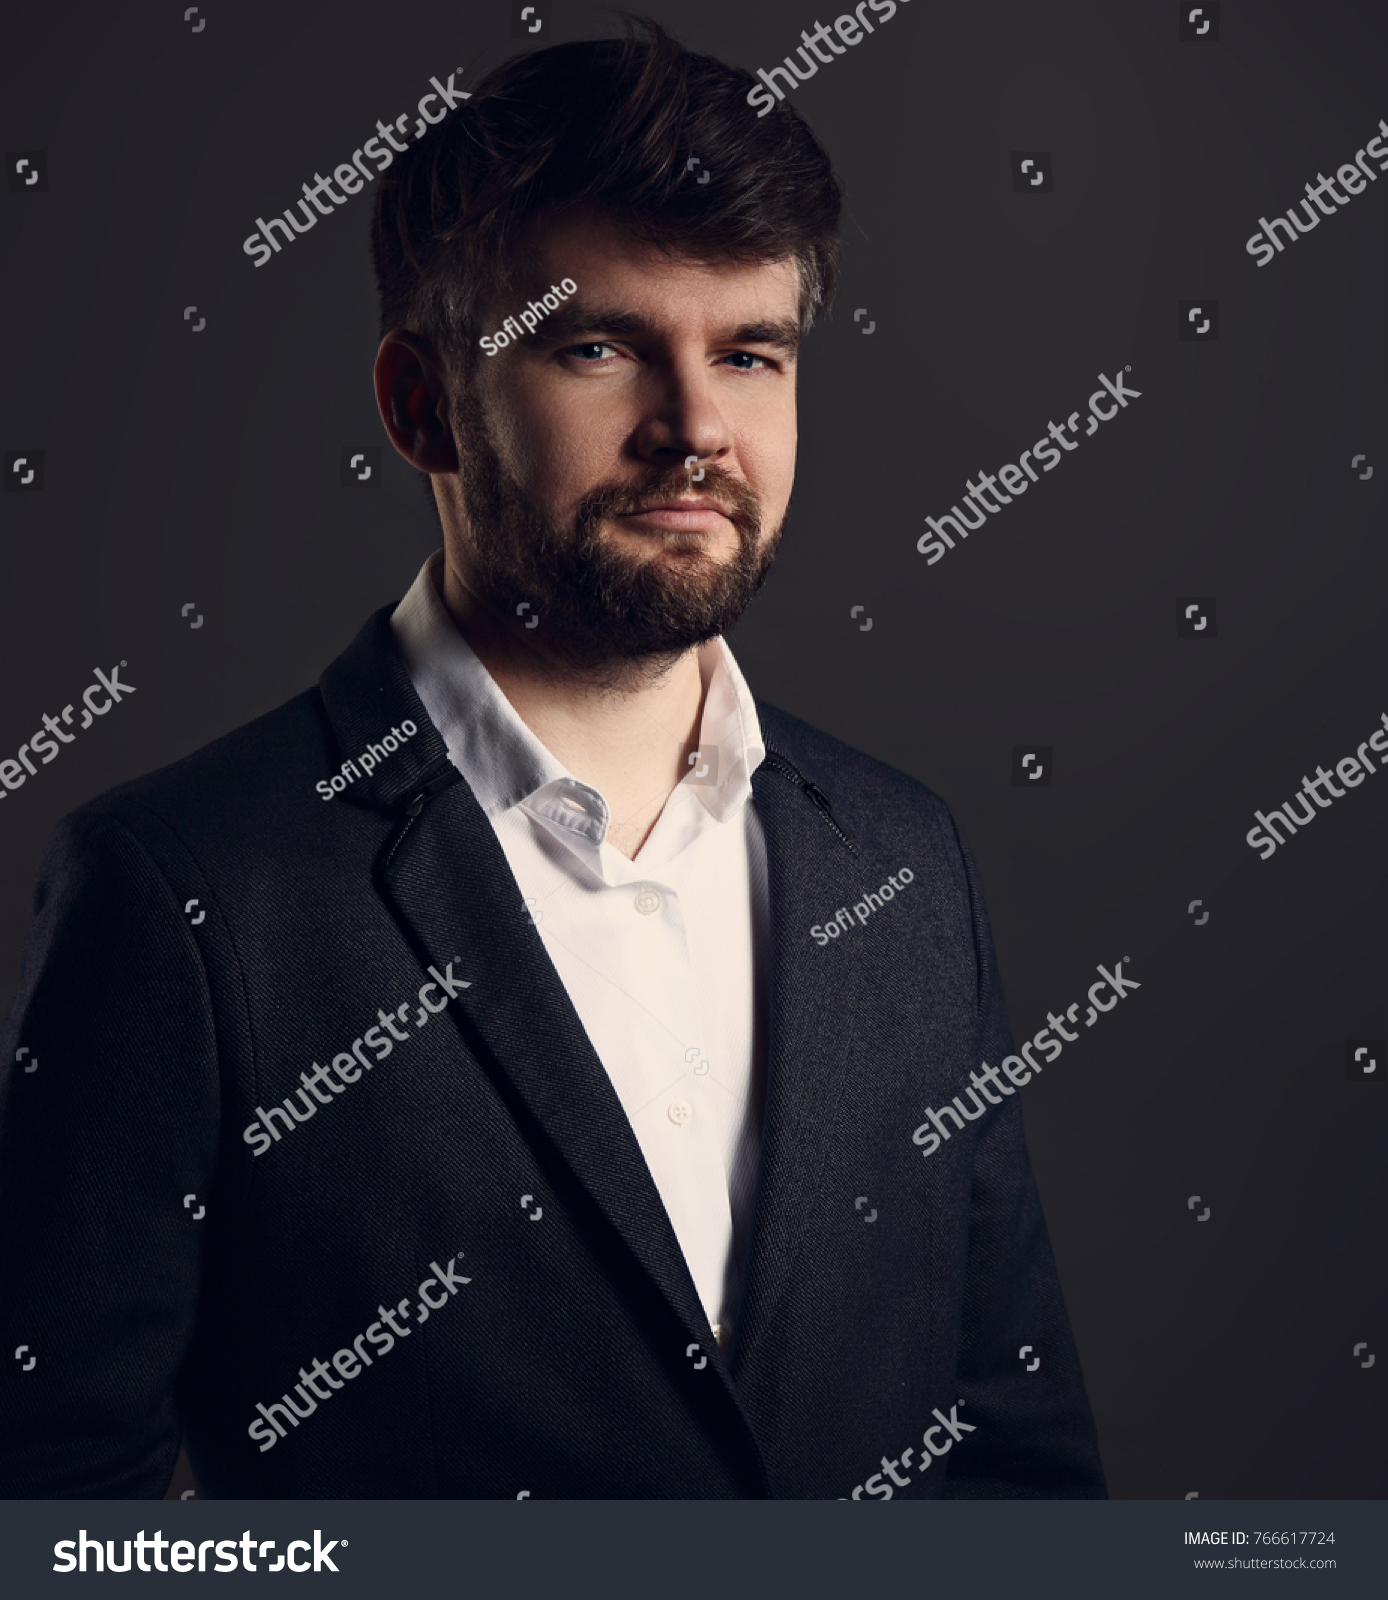 55b1b58e Serious handsome beard male posing in fashion suit and white style shirt  looking on dark grey shadow background. Closeup portrait - Image